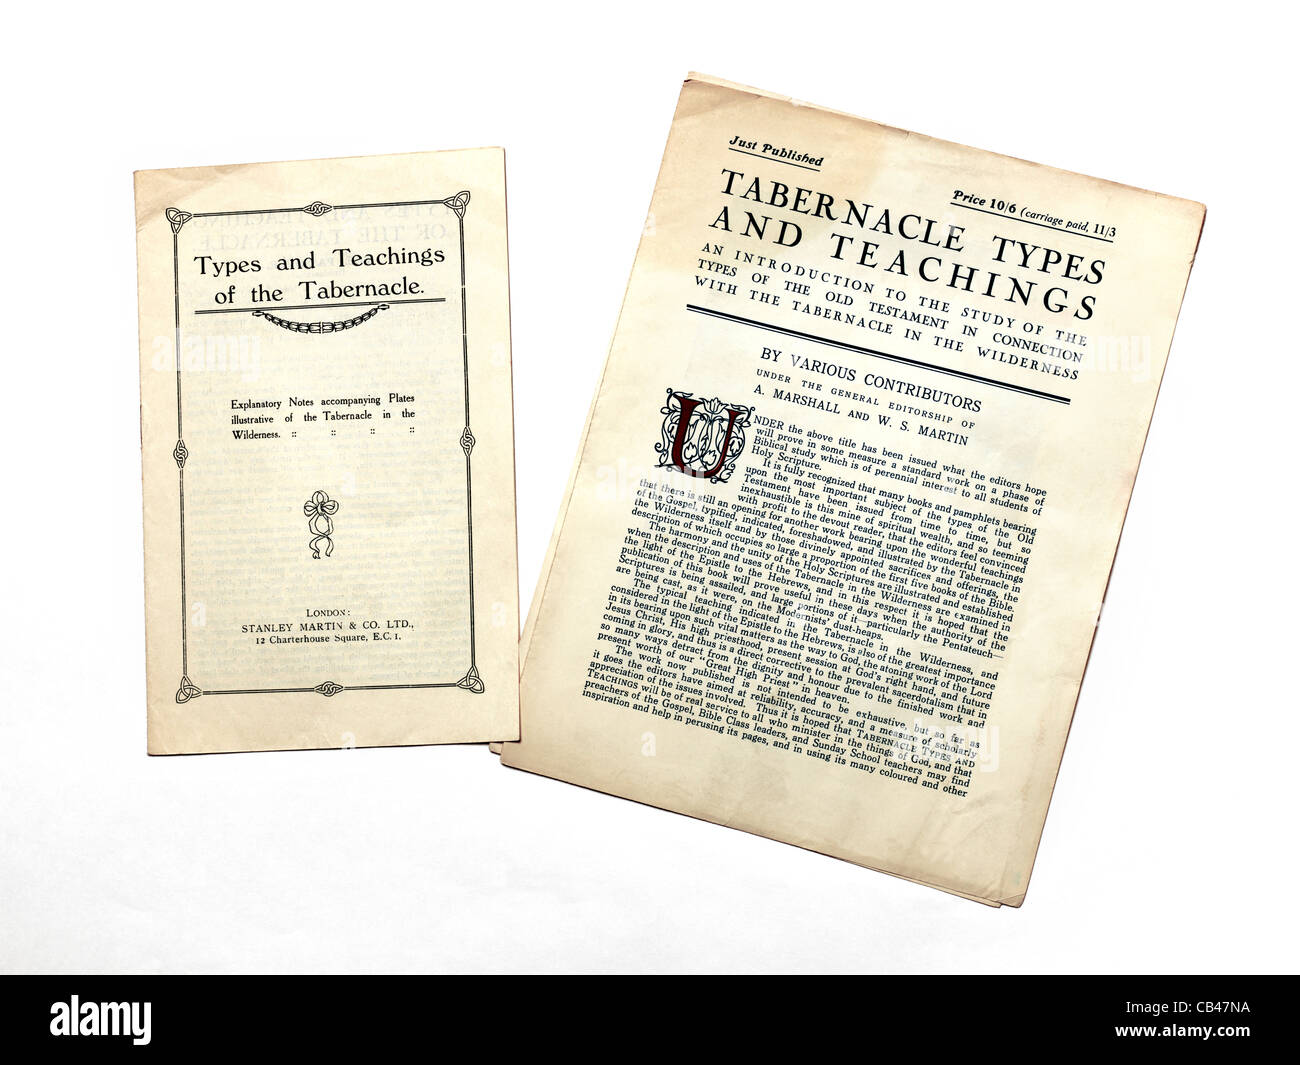 Old Leaflets On The Types And Teachings Of The Tabernacle - Stock Image